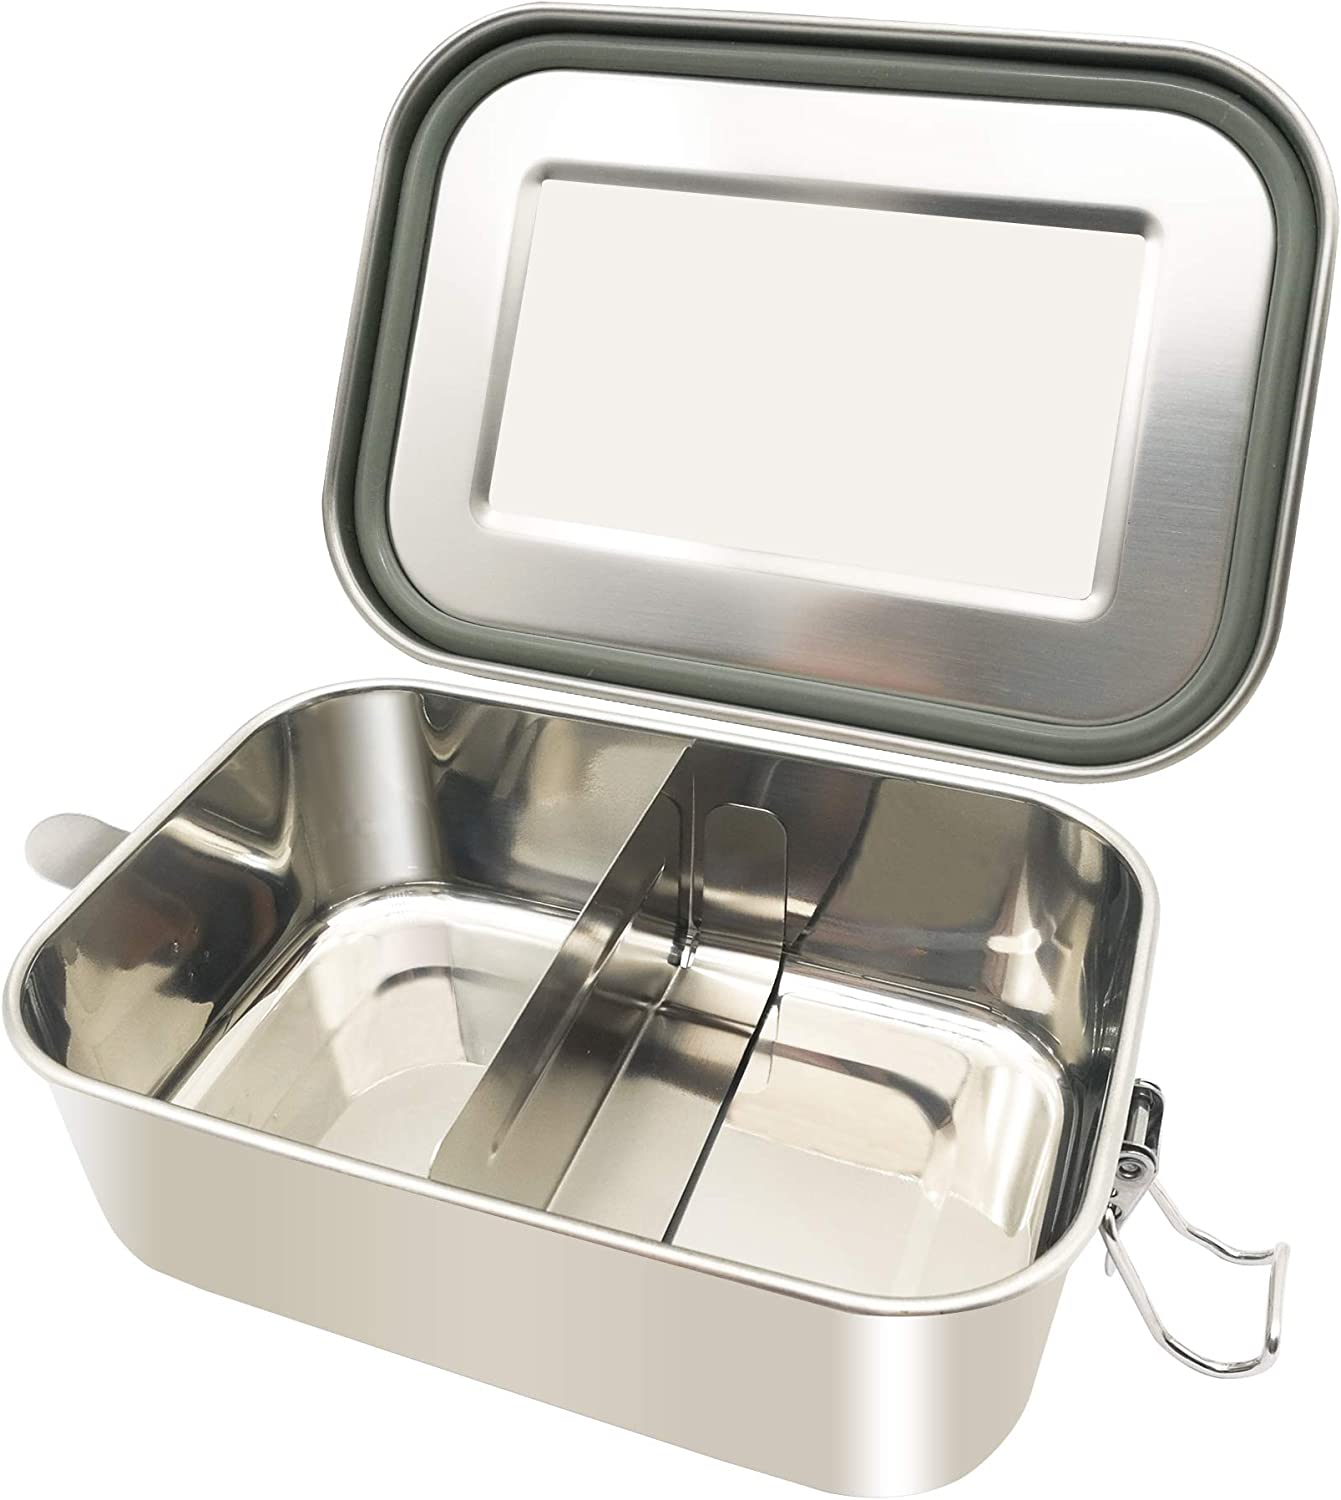 UPTRUST Stainless Steel Lunch Food Container, Large Bento Boxes Metal Lunch Box for Kids or Adults - Lockable Clips to Leak Proof- Adjustable Divider included -Dishwasher Safe, BPA free (800ML/27oz)